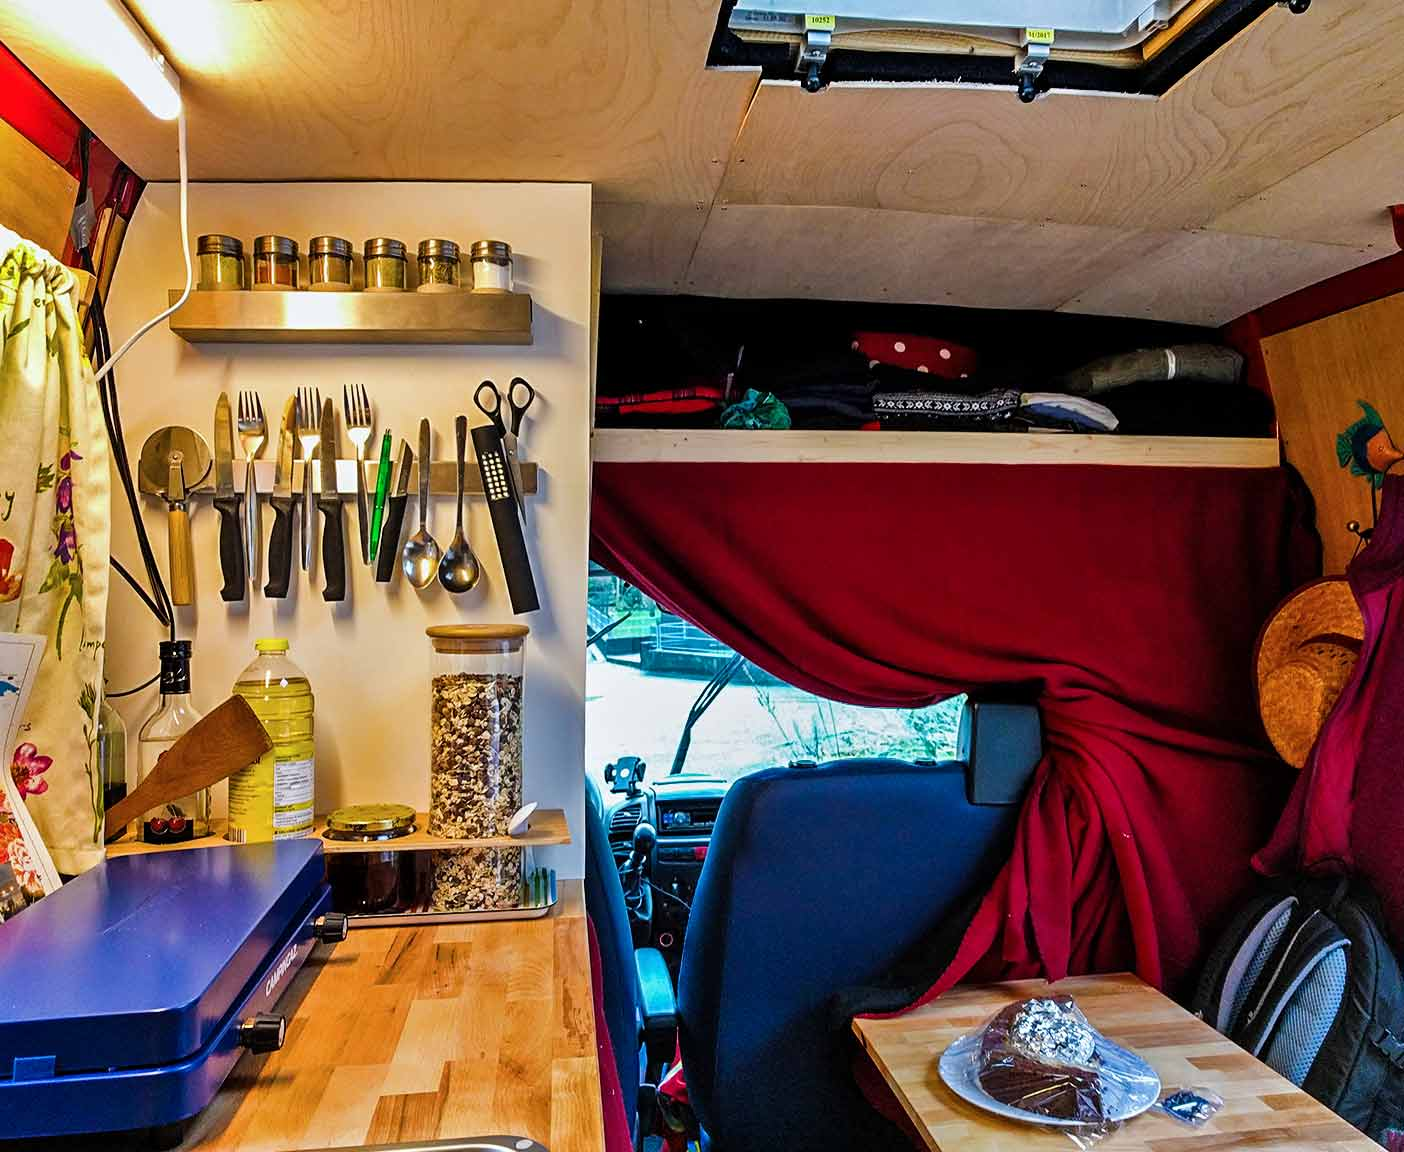 fiat ducato maxi der wohnmobil kastenwagen als camper ausbau. Black Bedroom Furniture Sets. Home Design Ideas